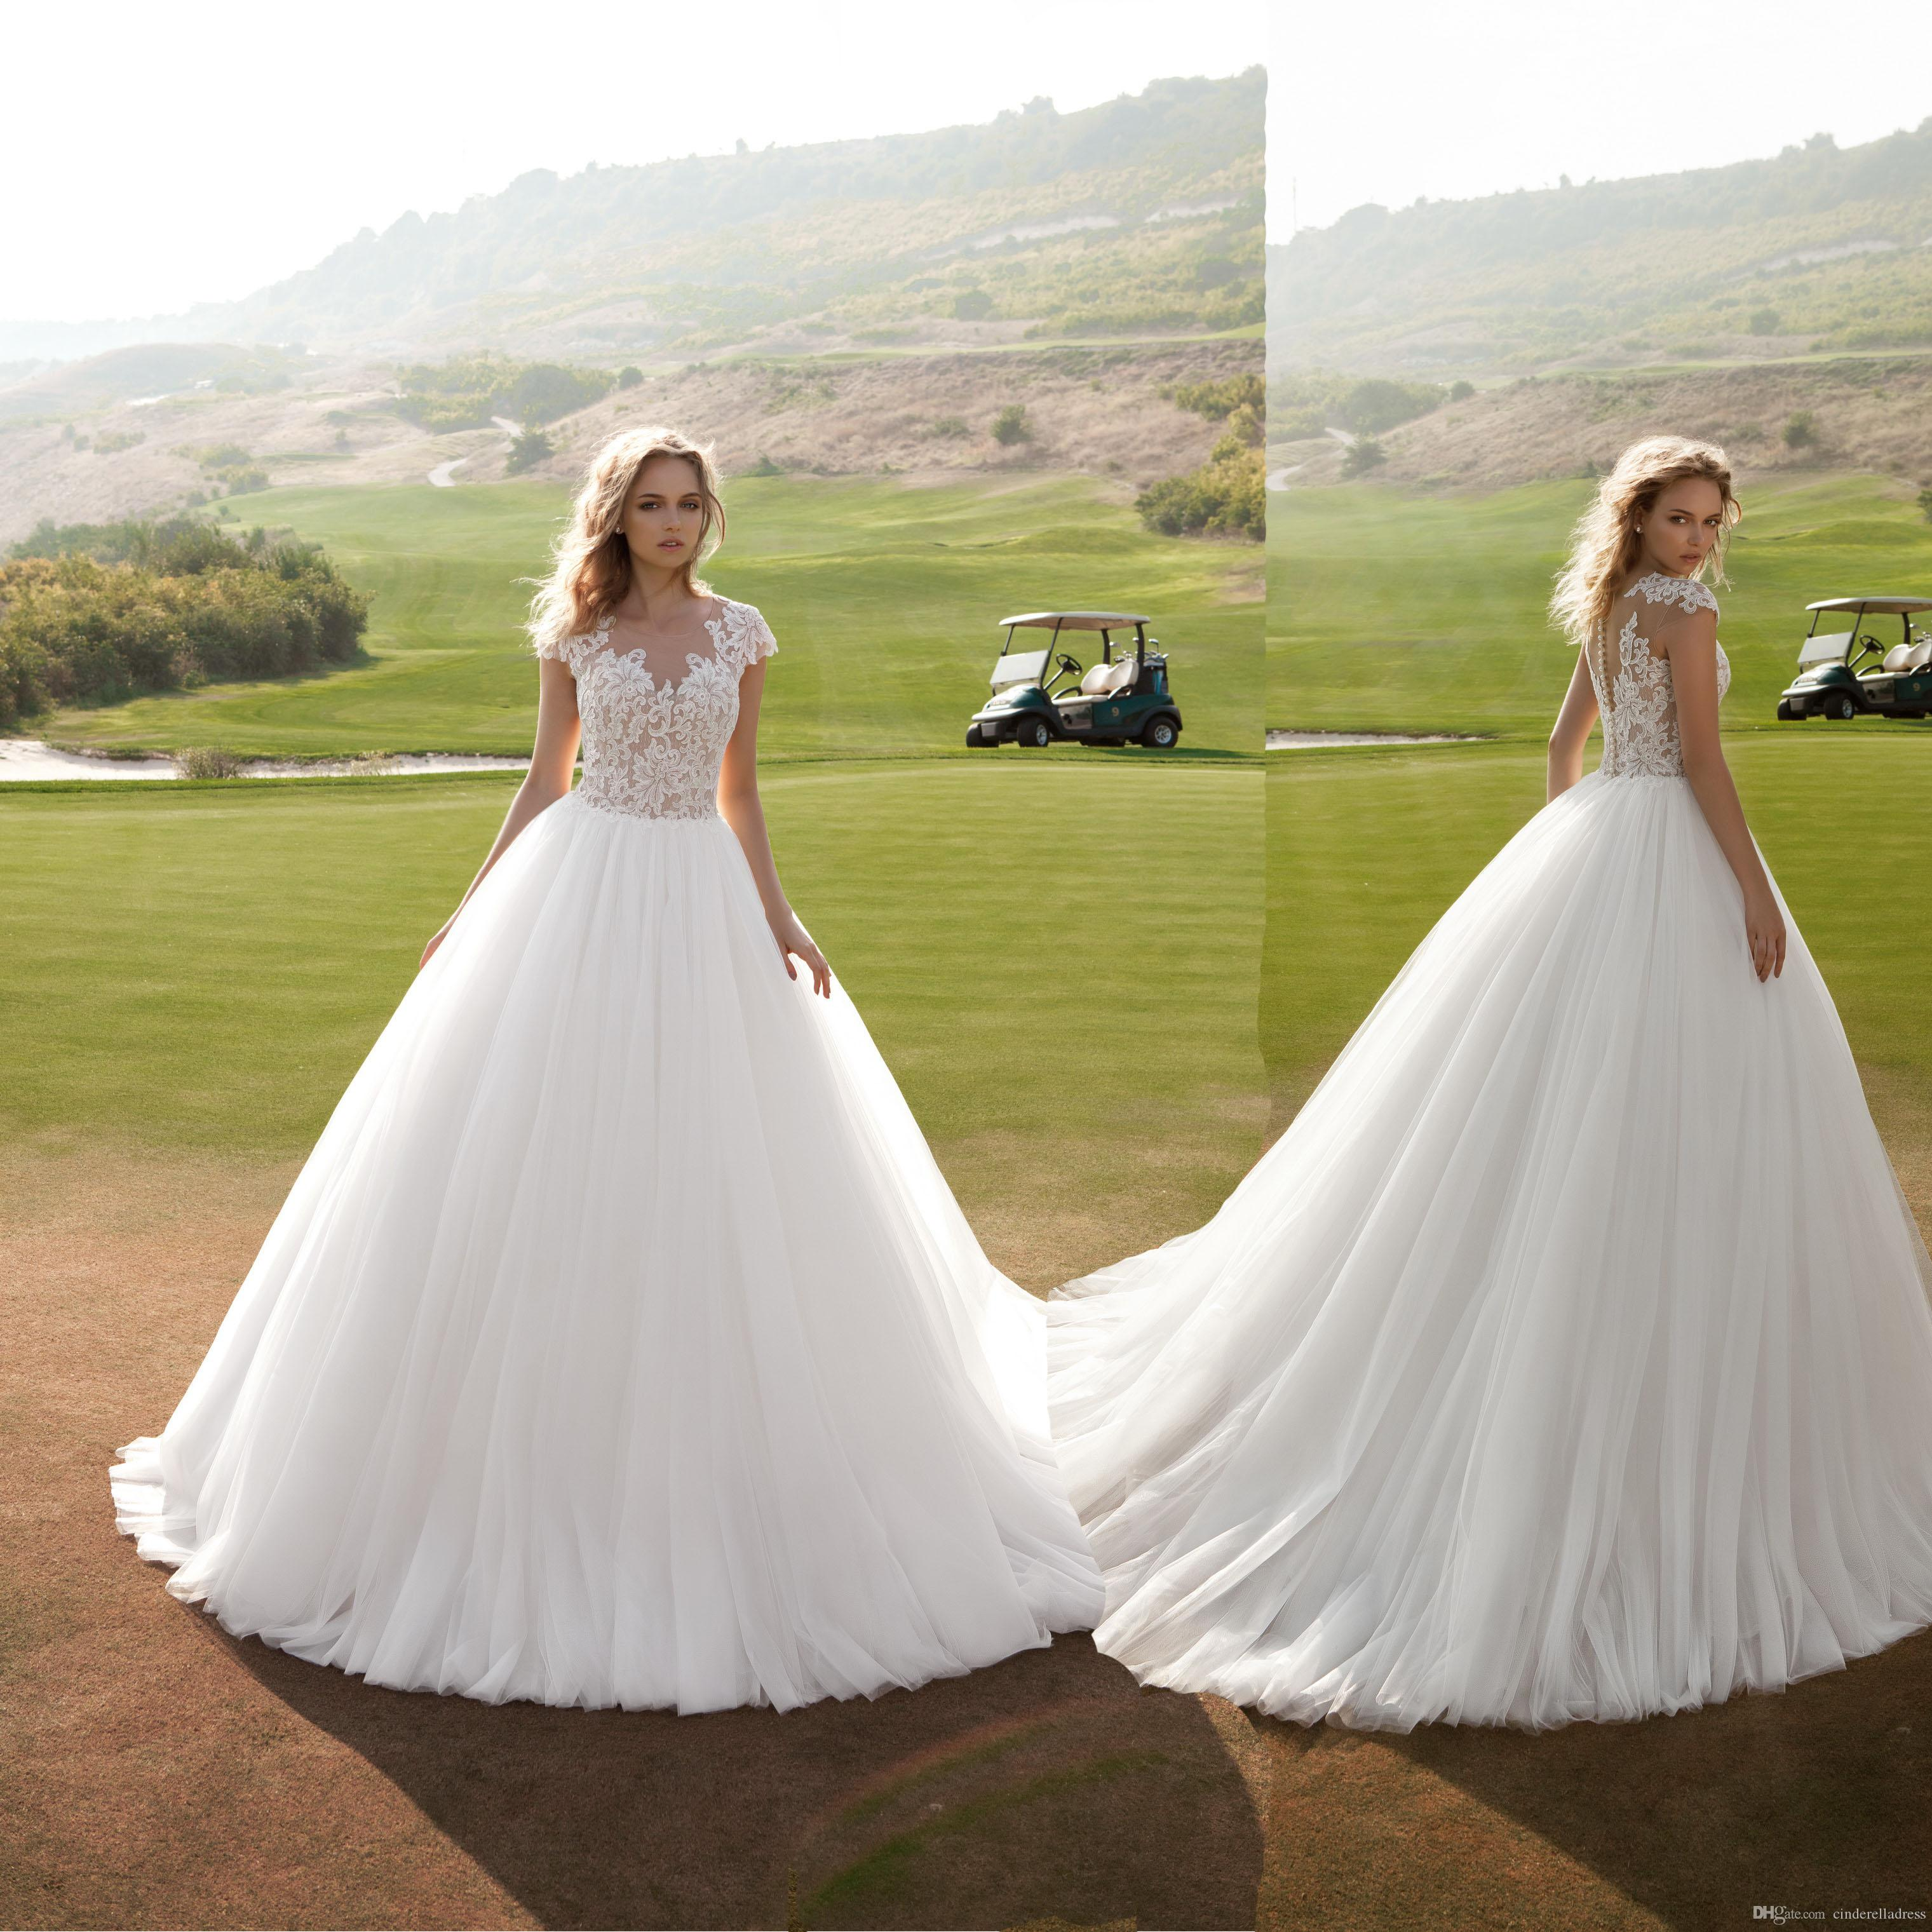 2018 Fashion Ball Gown Lace Top Wedding Dresses Cap Sleeves Buttons Back Sweep Train Garden Plus Size Bridal Gowns Pretty Short